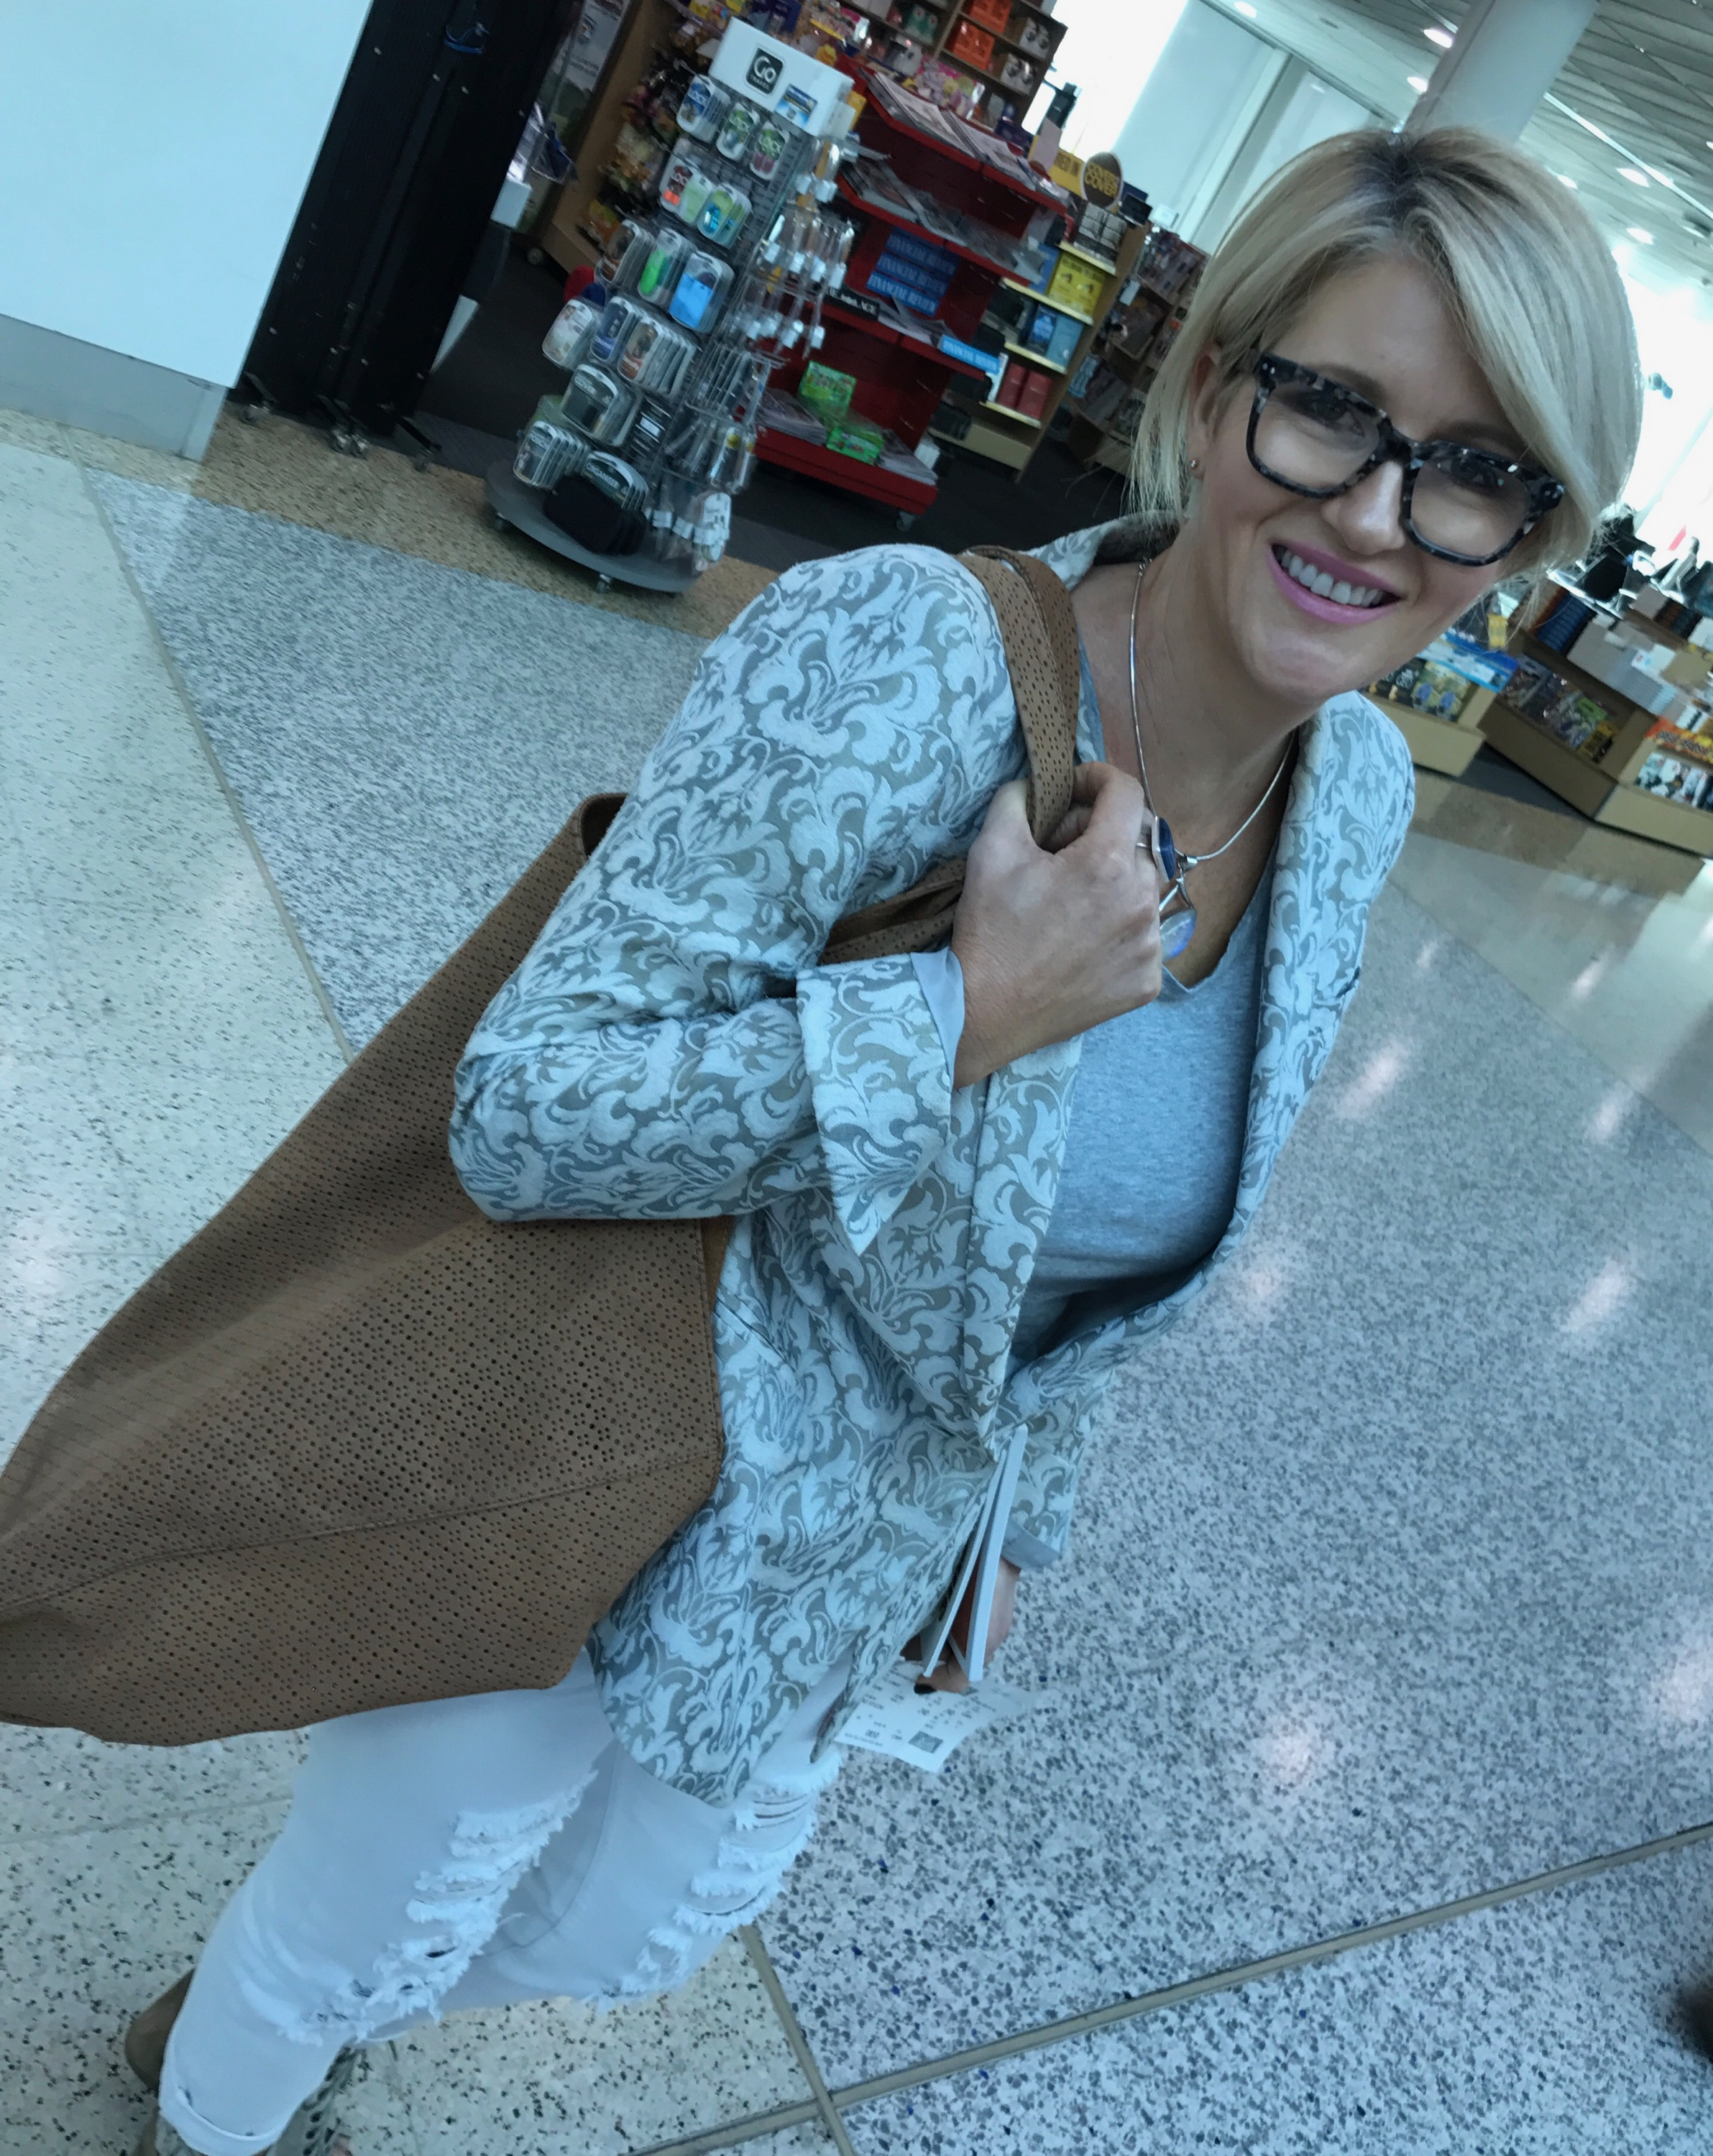 """At the airport last year with my """"couch"""" blazer. The kids think it looks like a couch cover, but this Carla Zampatti jacket has been my travel companion for years. A great investment that I can scrunch up in a bag and it still looks great. The couch is here to stay!"""